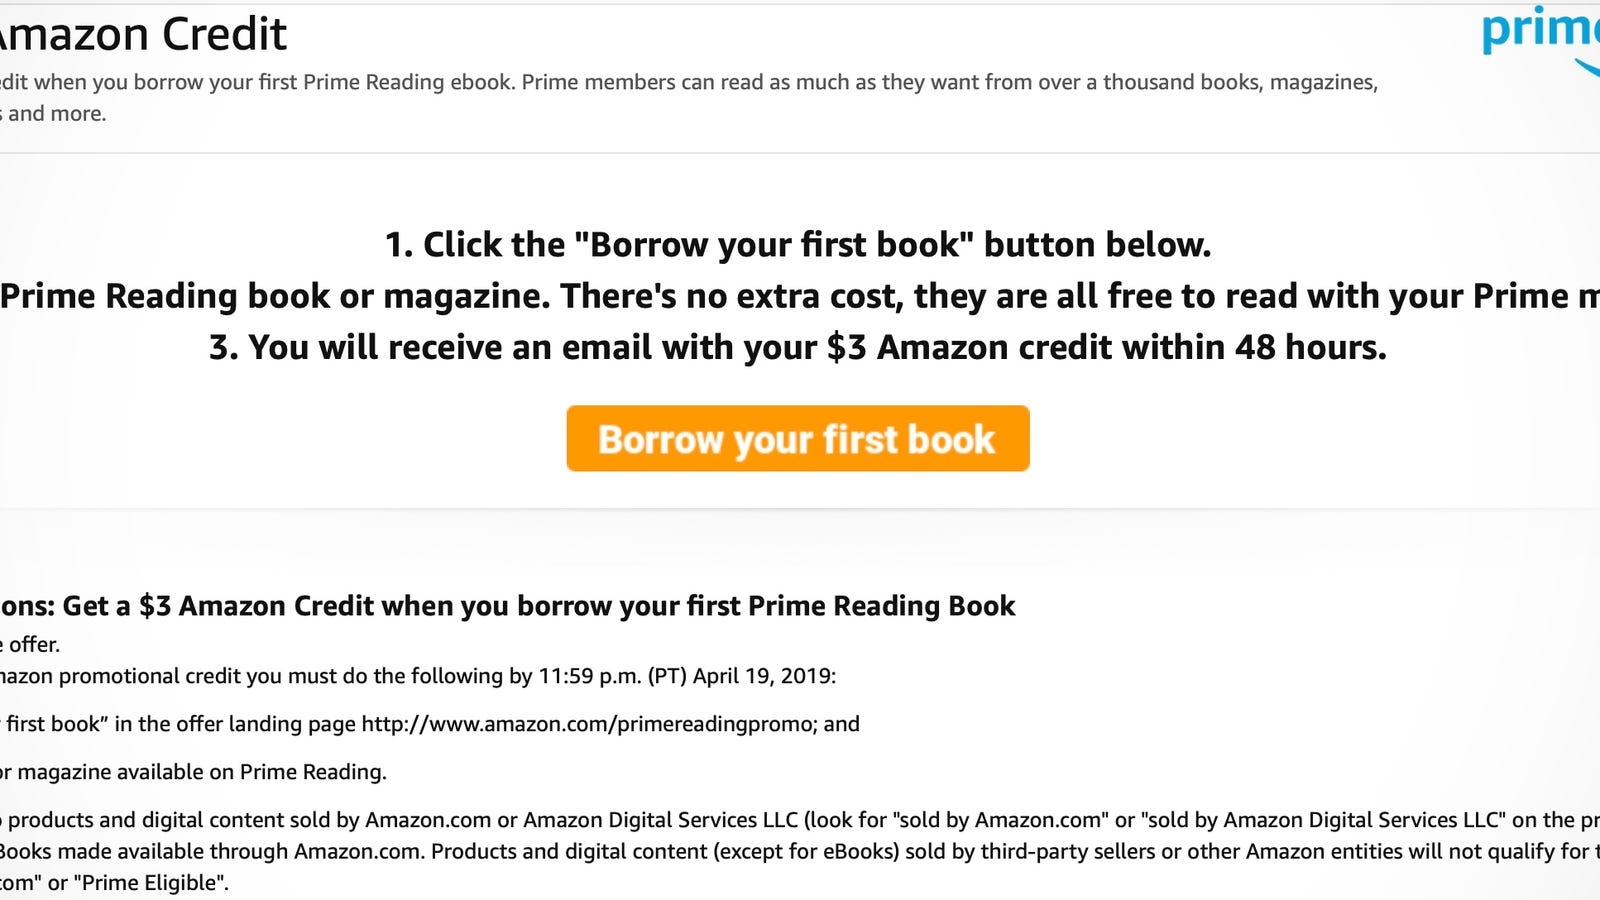 Have Prime? Click Two Buttons To Get a FREE $3 Amazon Credit.